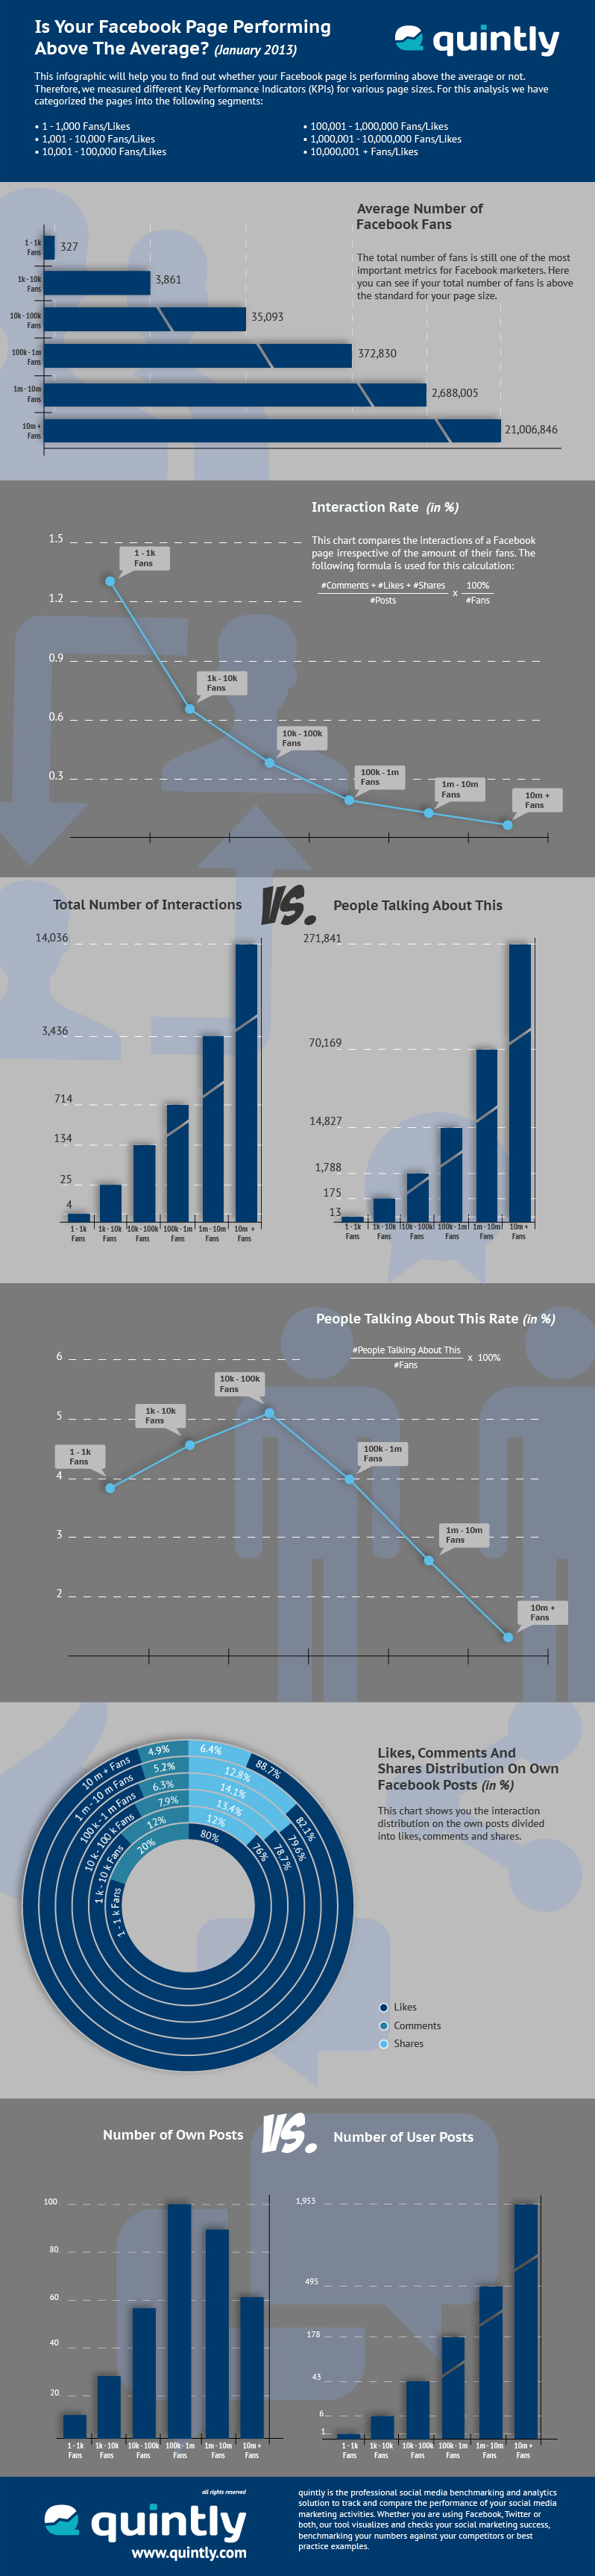 quintly Infographic: The Rise Of Social Media Analytics - The Demand Keeps Growing